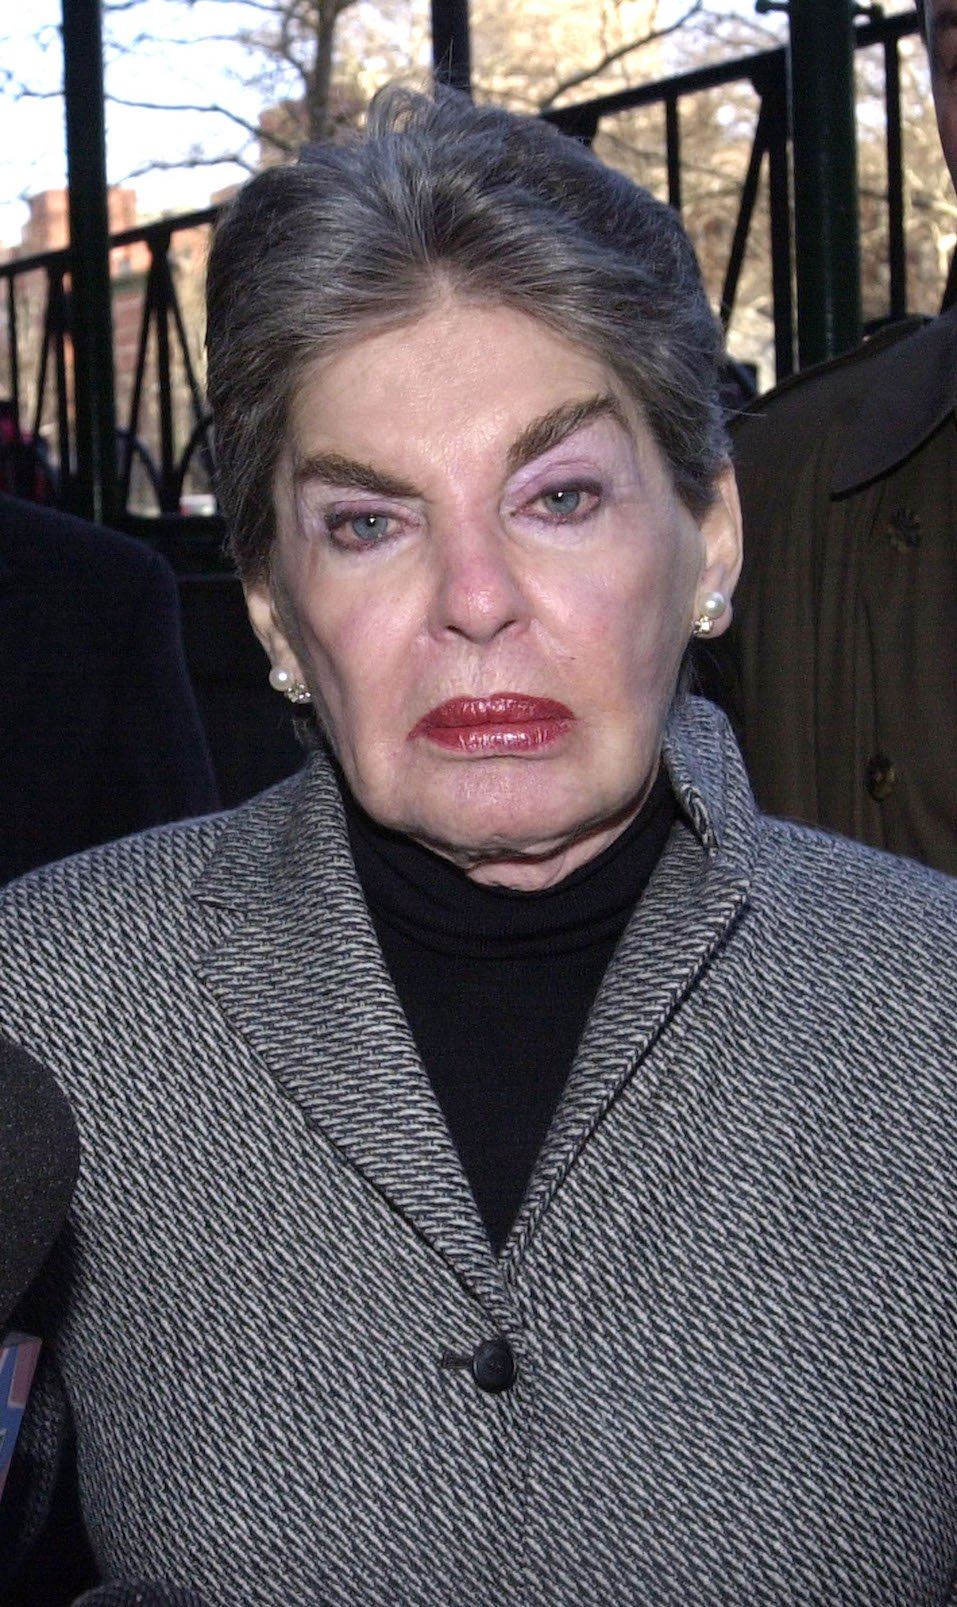 Real estate mogul Leona Helmsley is aided by her body guards as she arrives to court